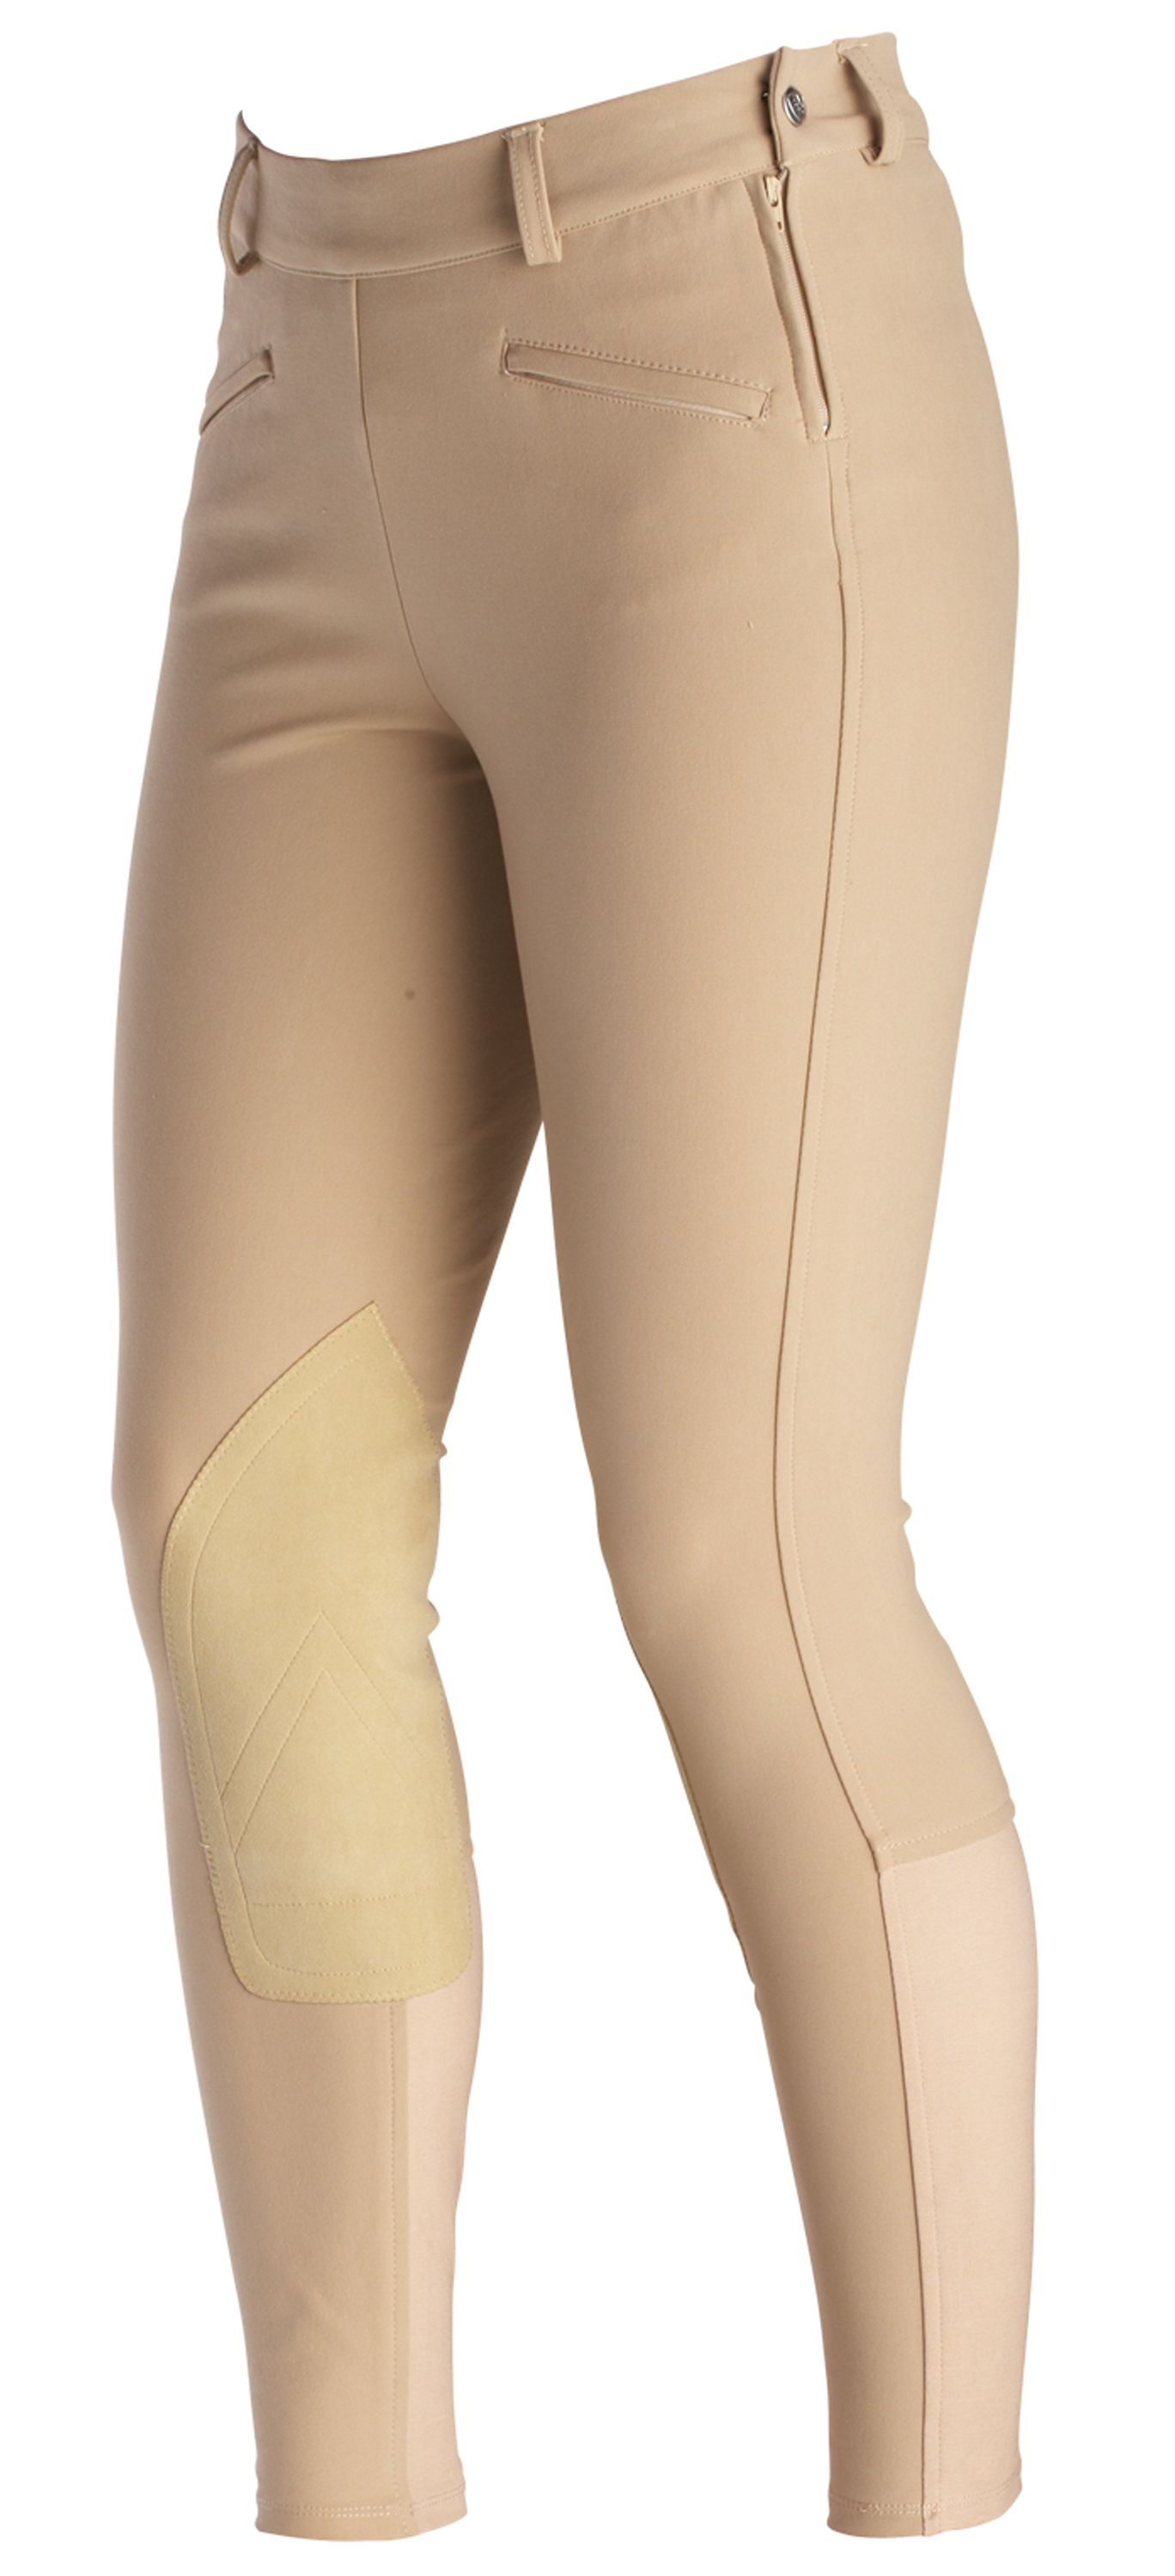 Ariat Ladies Performer Knee Patch Riding Breeches -Tan/30 Long